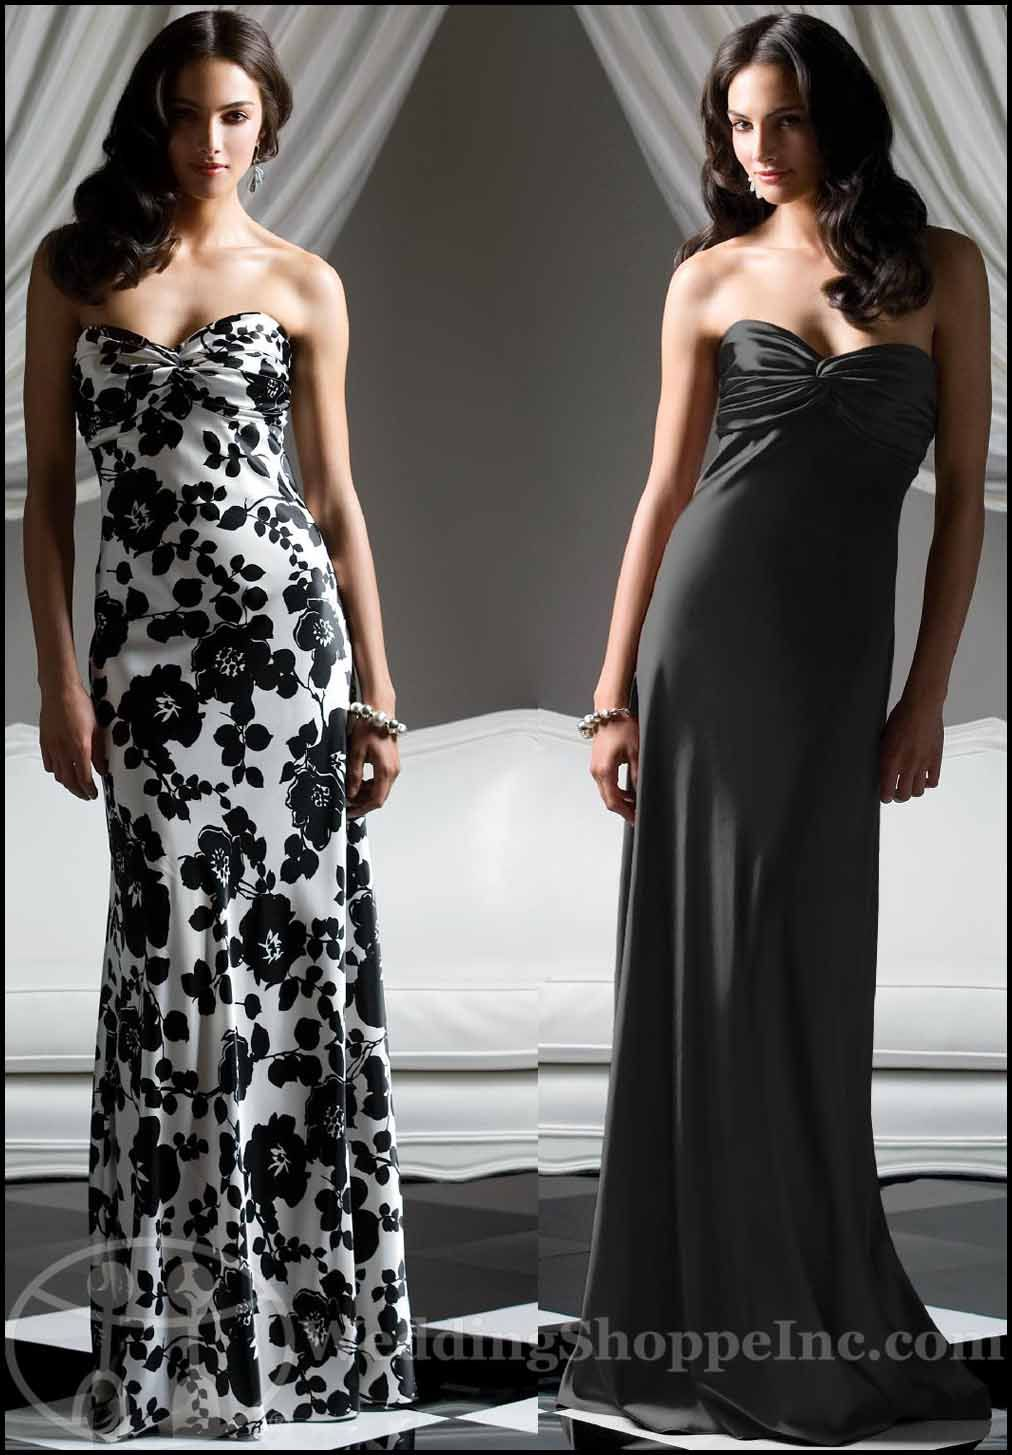 A Black and White Affair: Black and White Dessy Bridesmaid ...